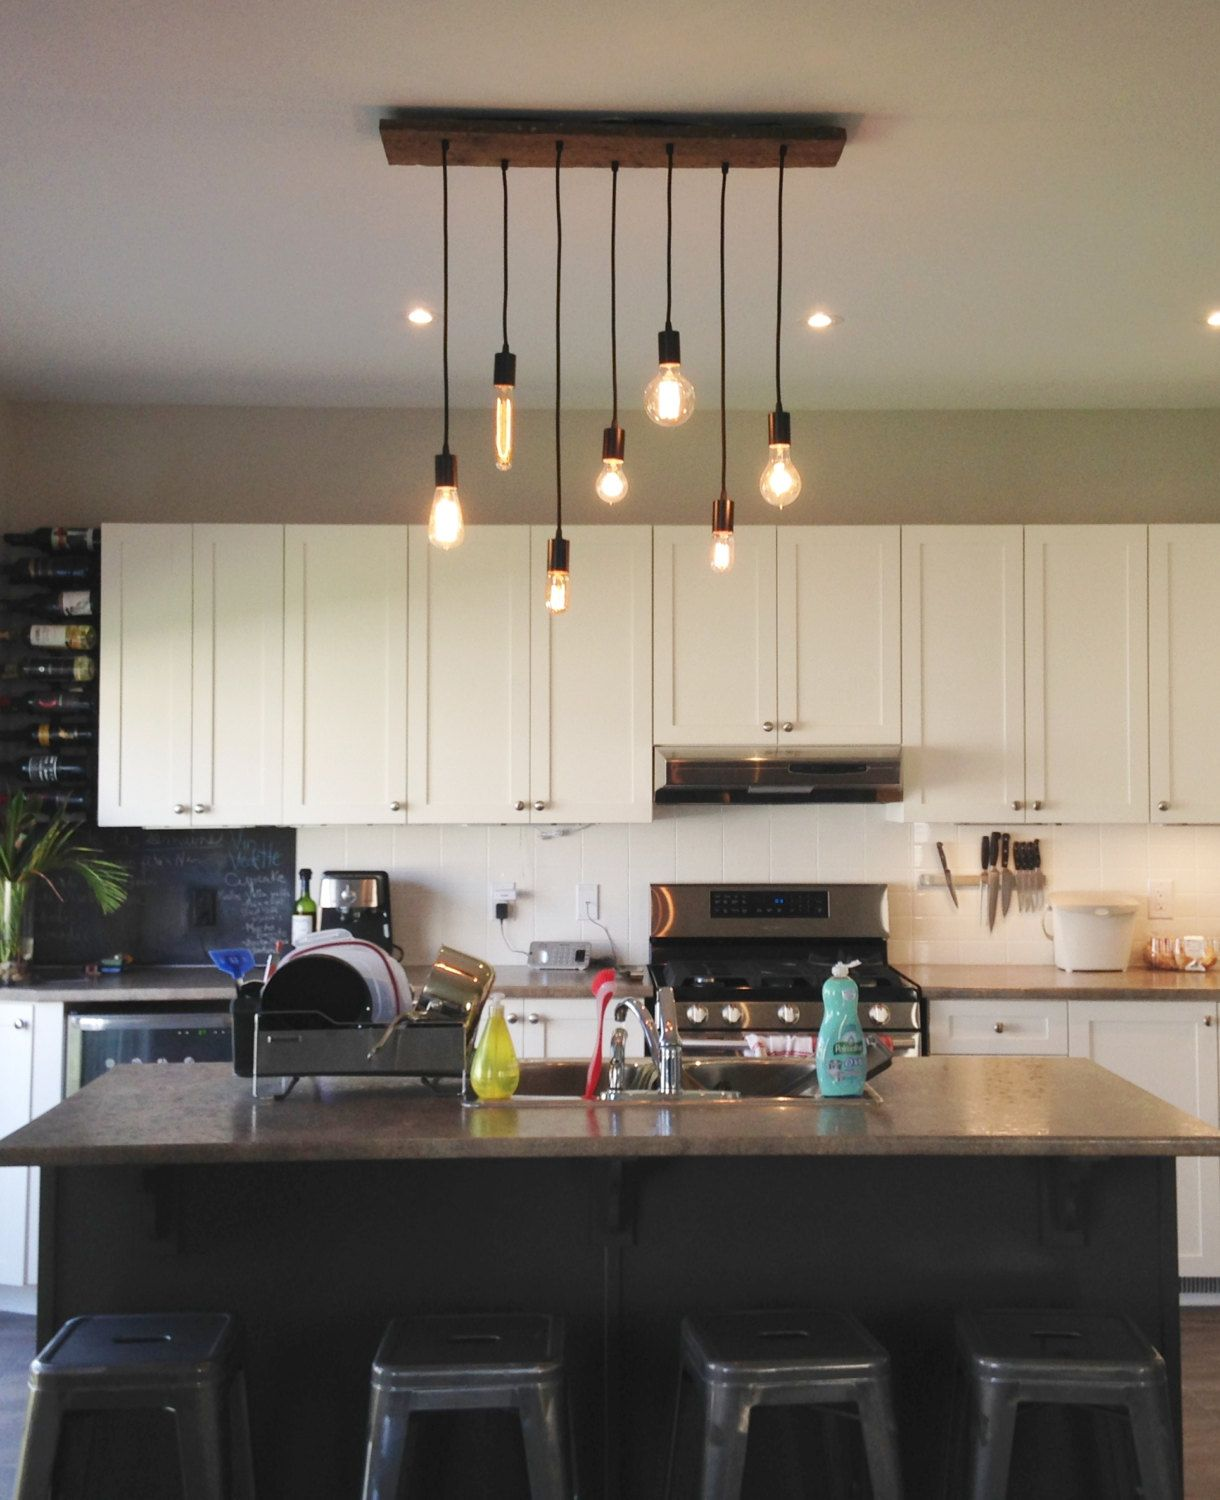 Design Esszimmer Lampen Modern Kitchen Wood Chandelier With Pendant Lights